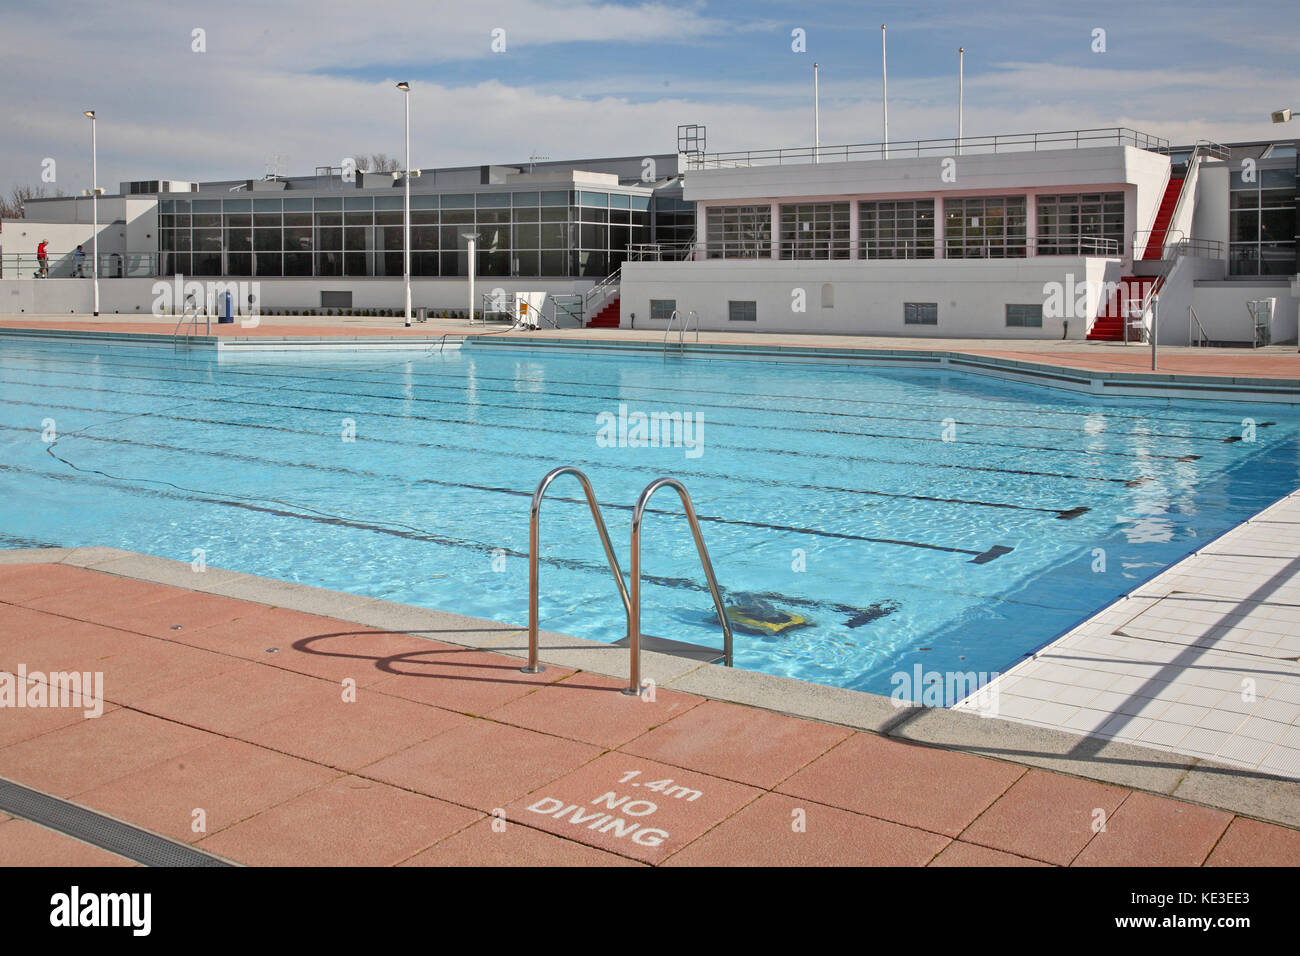 Outdoor Public Swimming Baths Stock Photos Outdoor Public Swimming Baths Stock Images Alamy